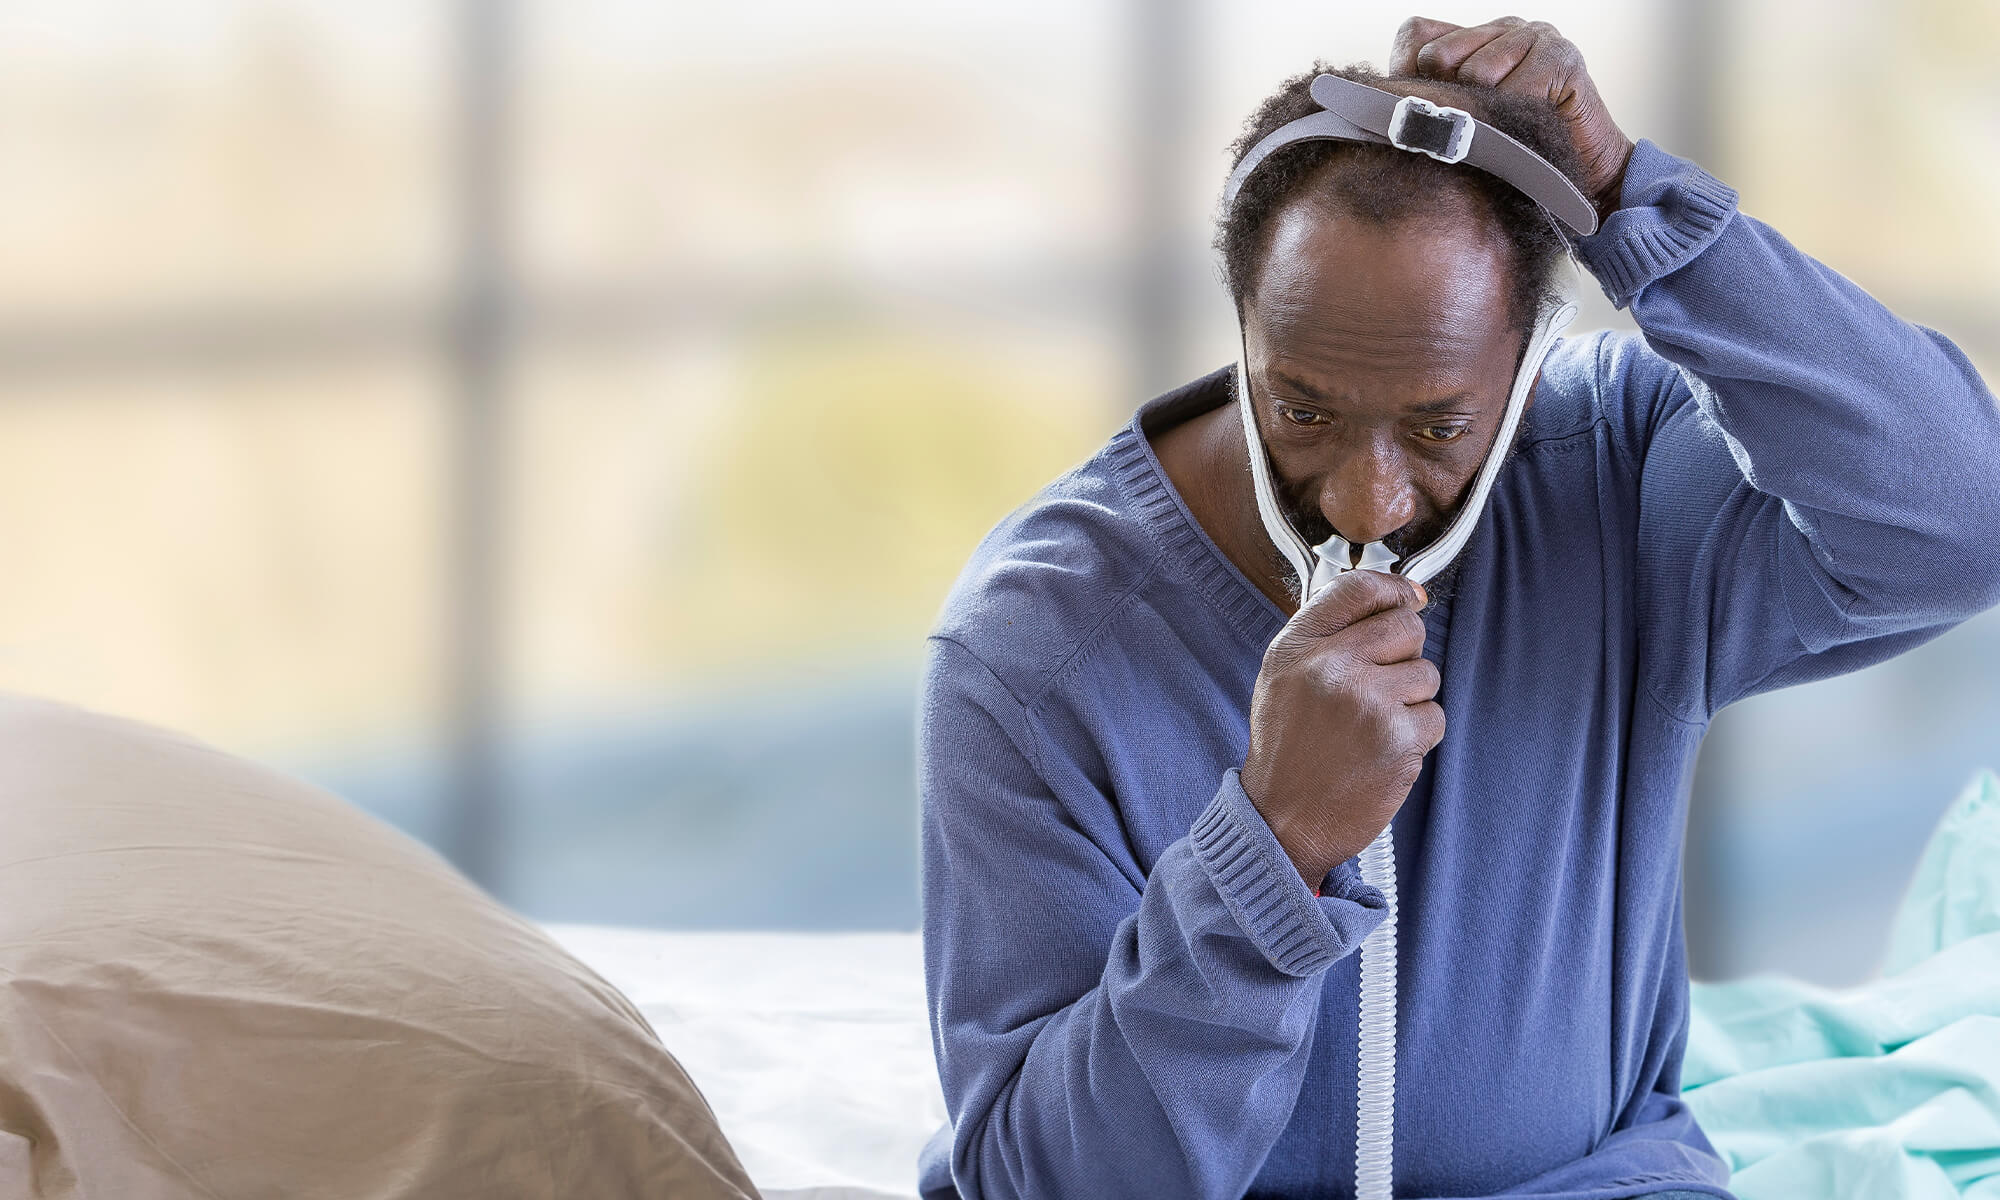 Man using positive airway pressure therapy